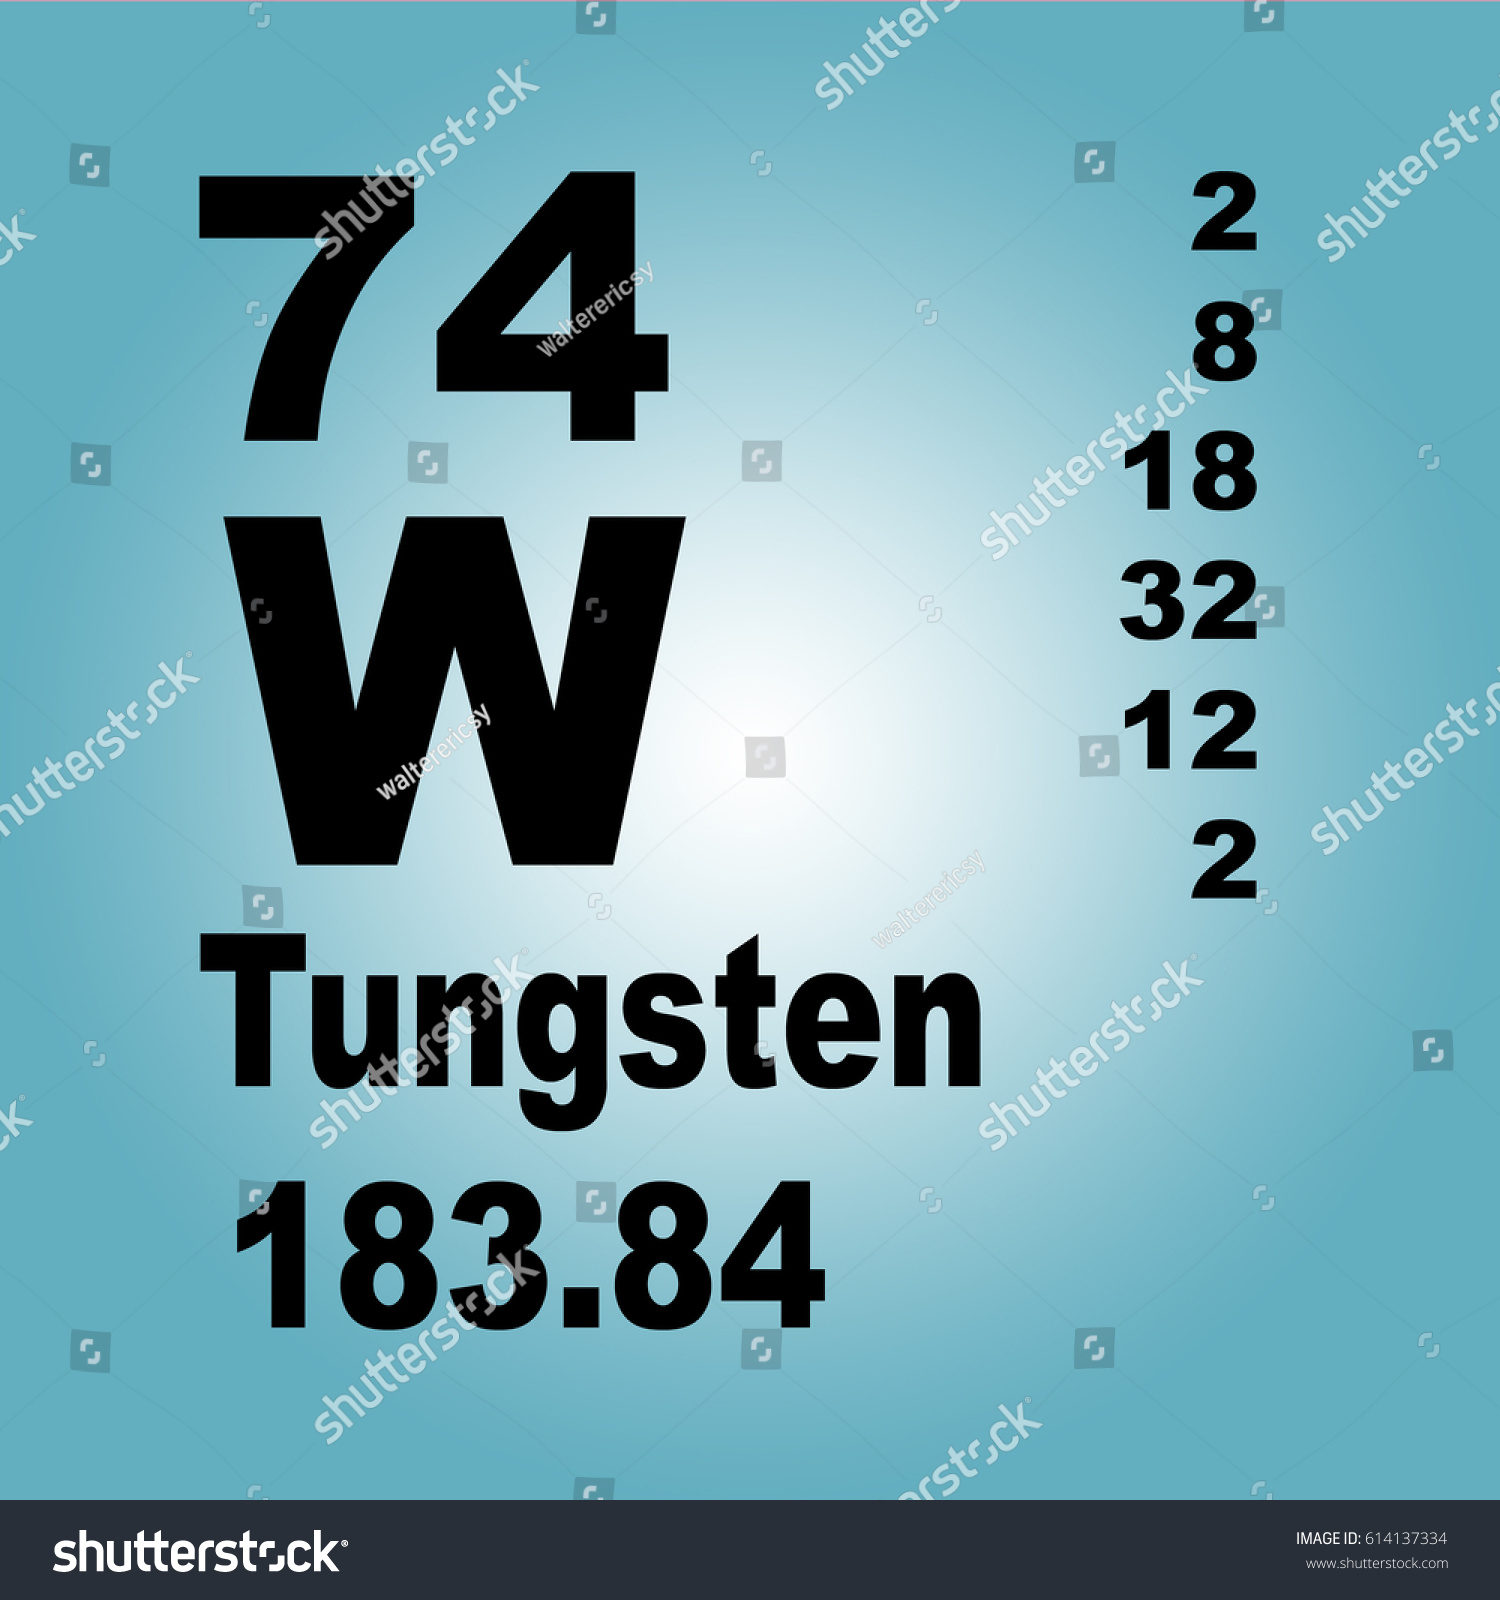 Tungsten periodic table elements stock illustration 614137334 tungsten periodic table elements stock illustration 614137334 shutterstock urtaz Image collections